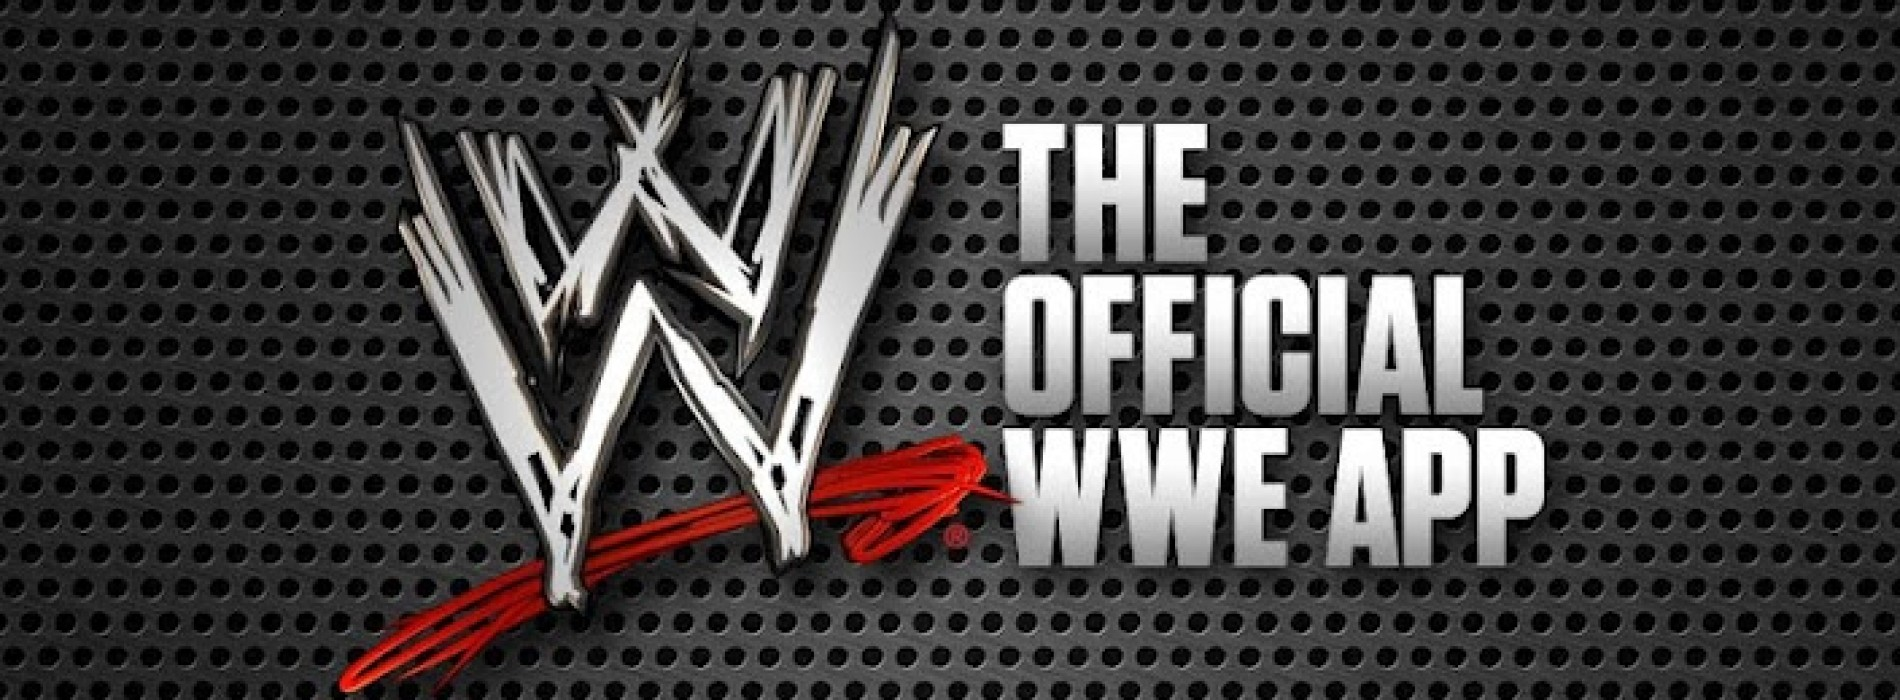 WWE releases official app with on-demand video, second-screen viewing